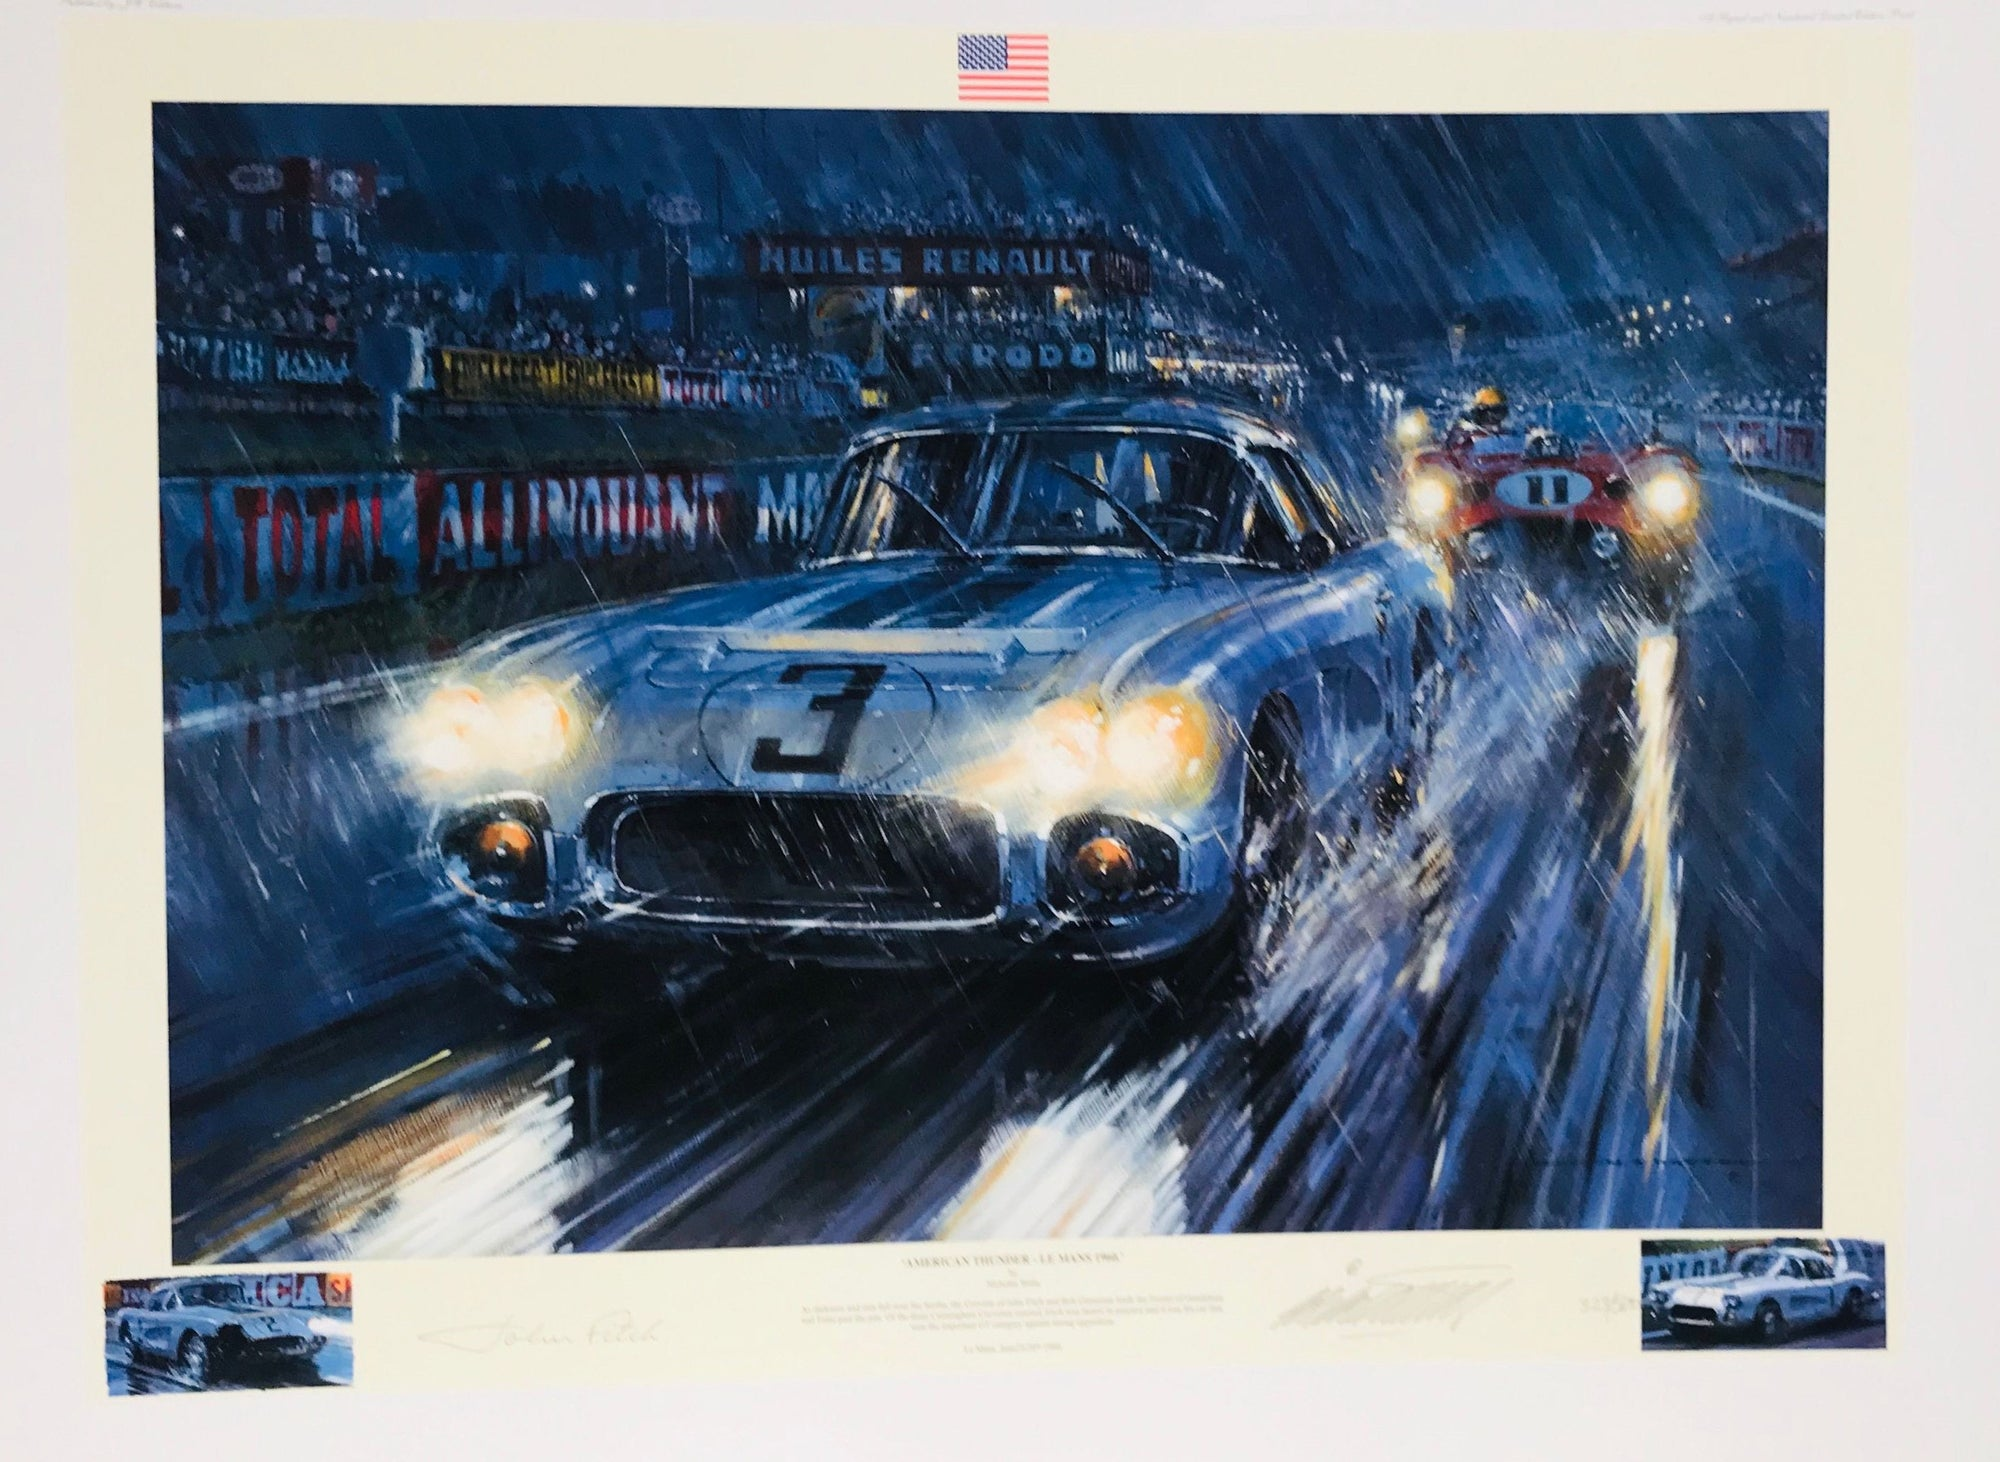 American Thunder Le Mans 1960 print by Nicholas Watts, autographed by John Fitch